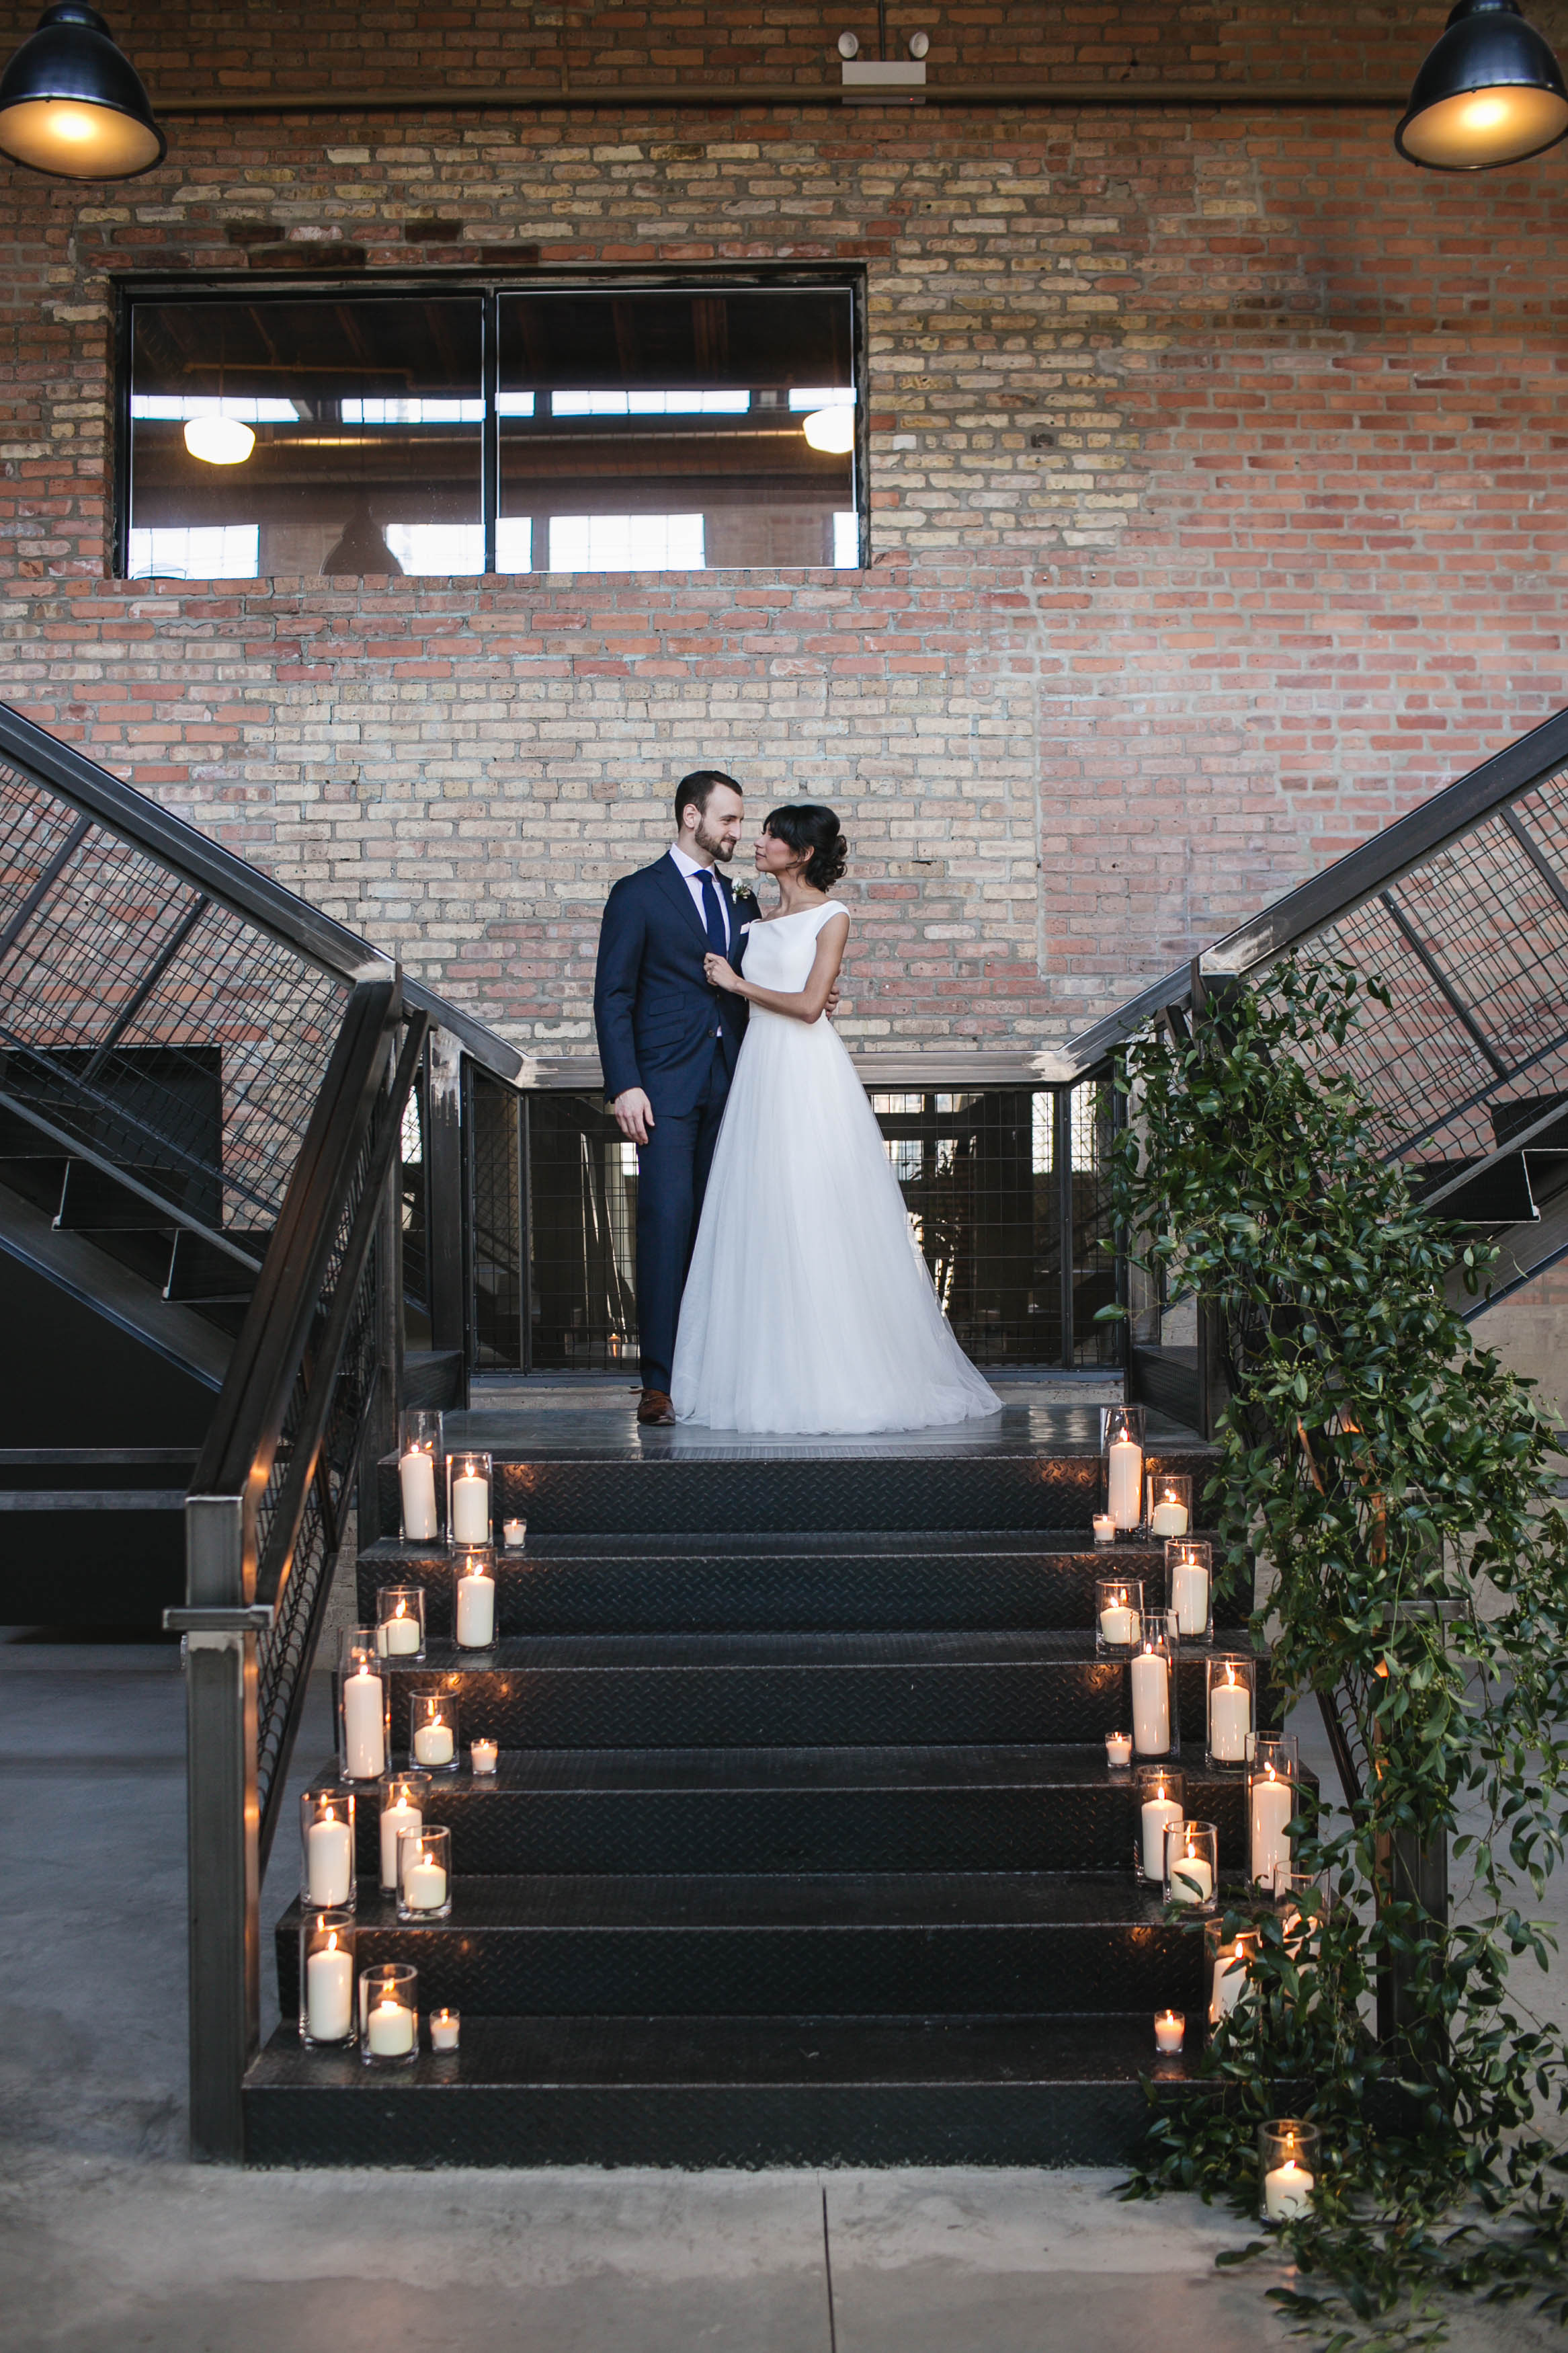 Romantic wedding styled shoot at Chicago's newest wedding venue, Fairlie, captured by Michelle Cox Photography. See more wedding ideas at CHItheeWED.com!